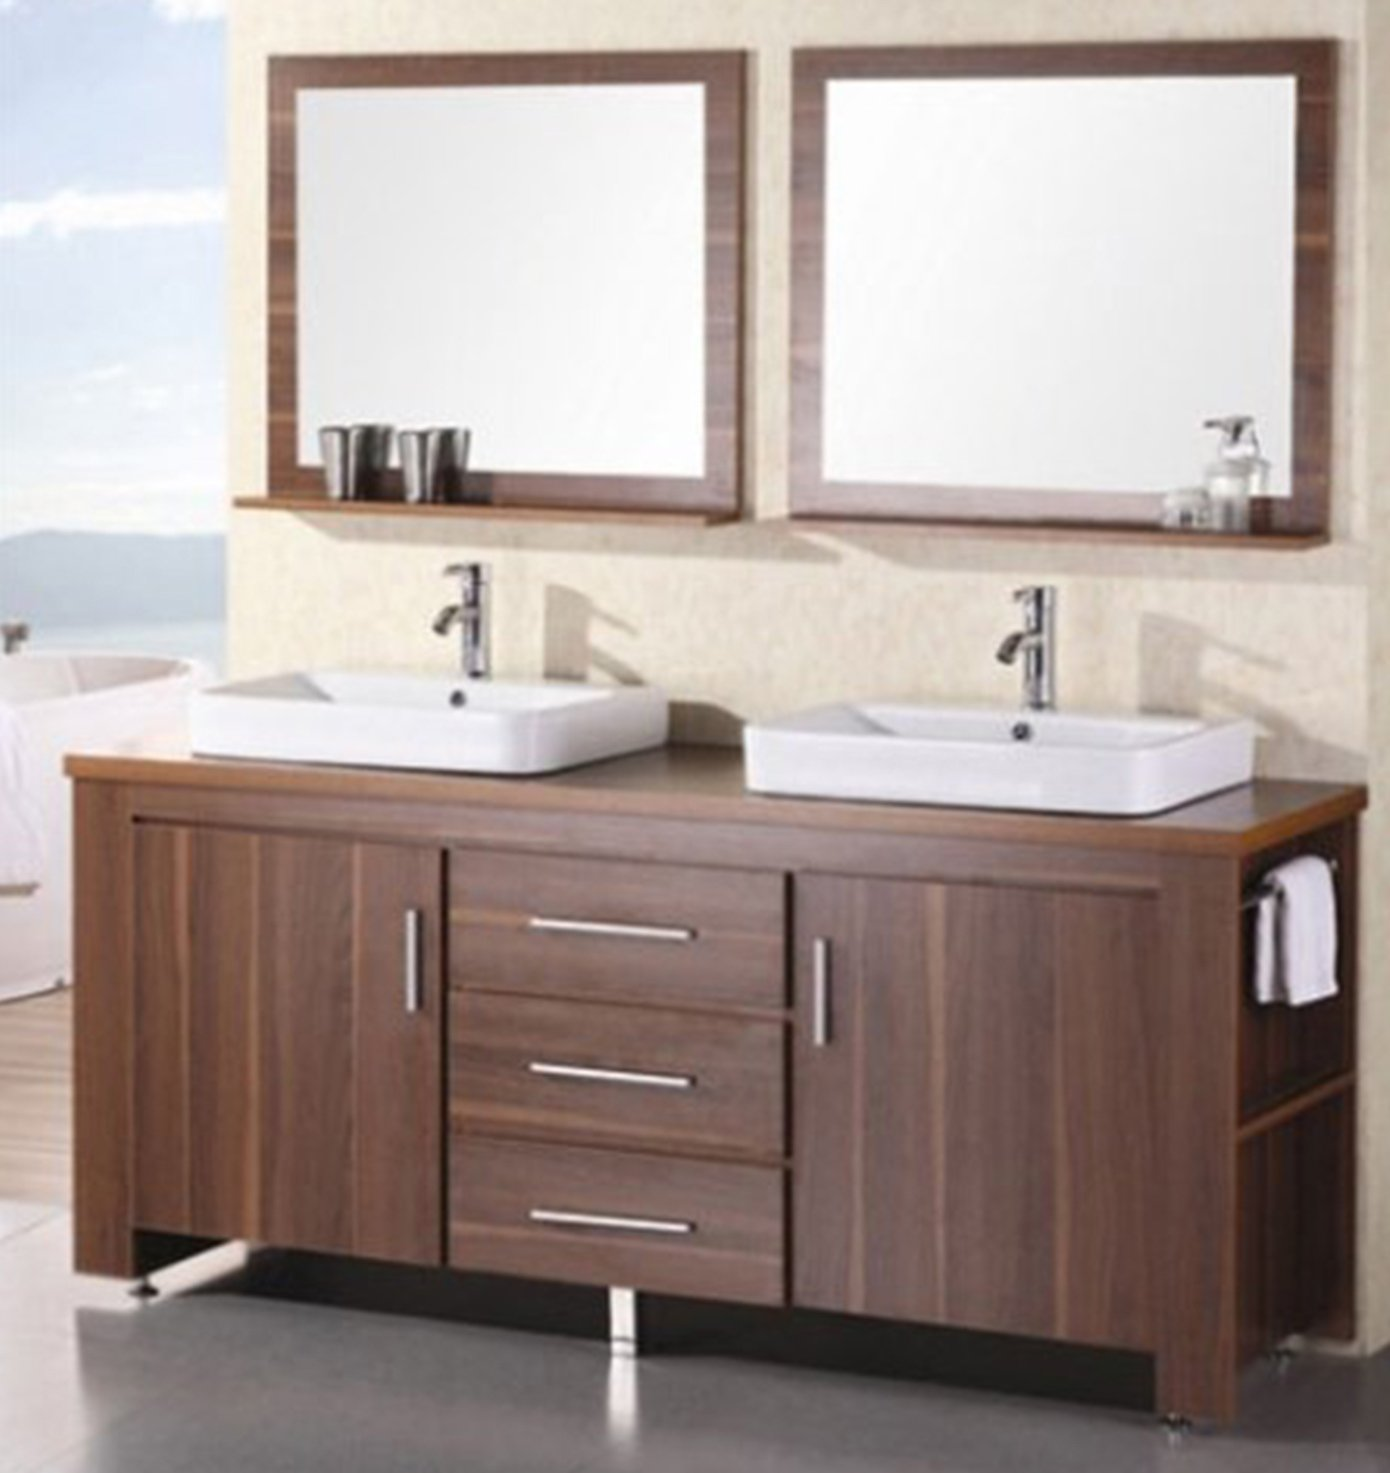 Design Element Washington Double Drop In Vessel Sink Vanity Set with Five  Drawers and Espresso Finish 96 Inch Bathroom Vanities Amazon com